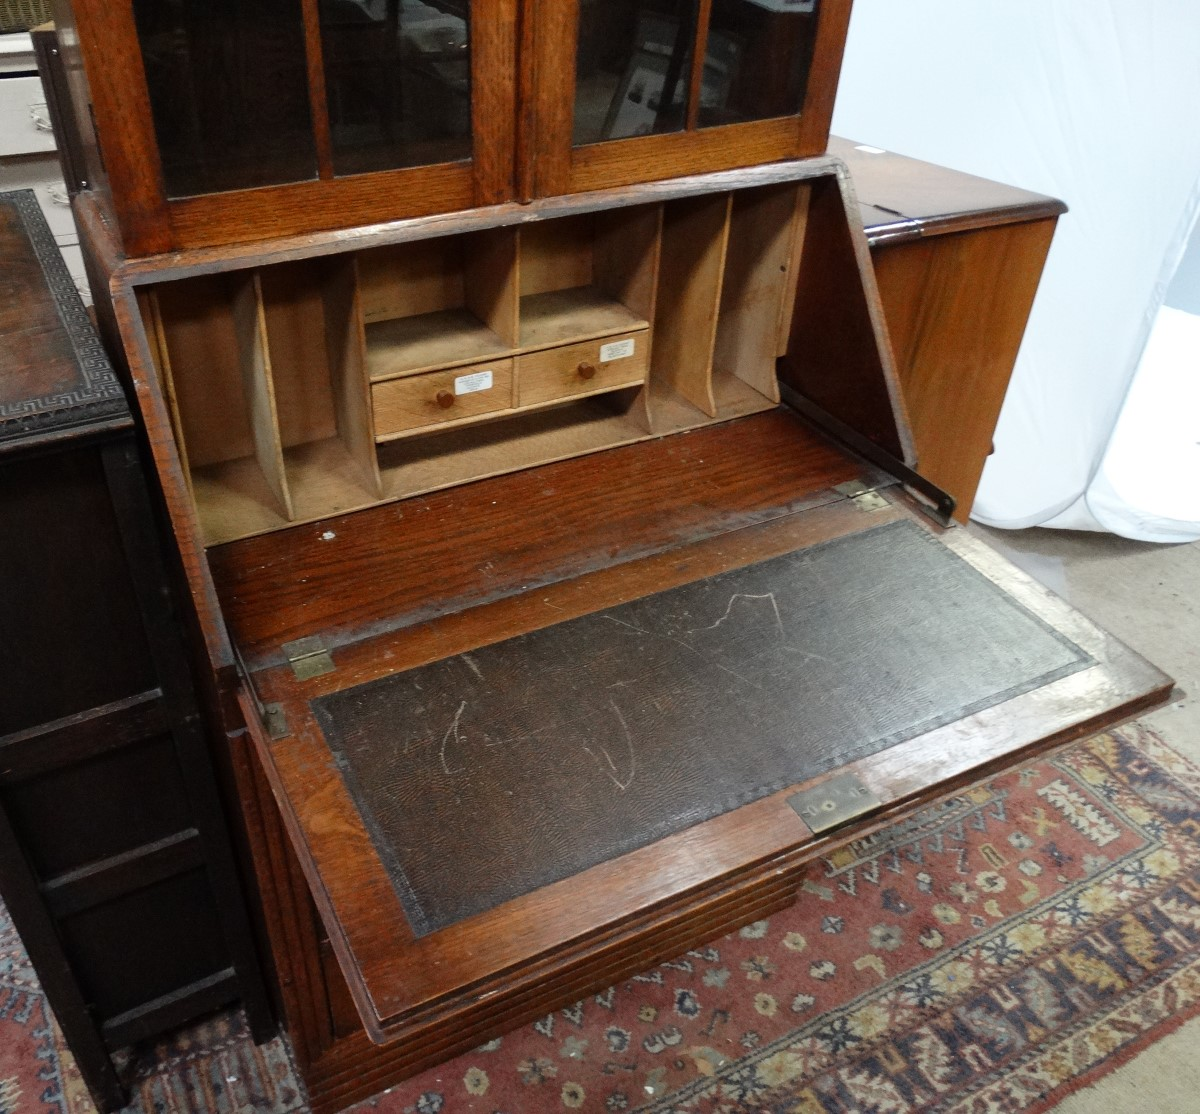 Lot 56 - 1930/40s bureau bookcase CONDITION: Please Note - we do not make reference to the